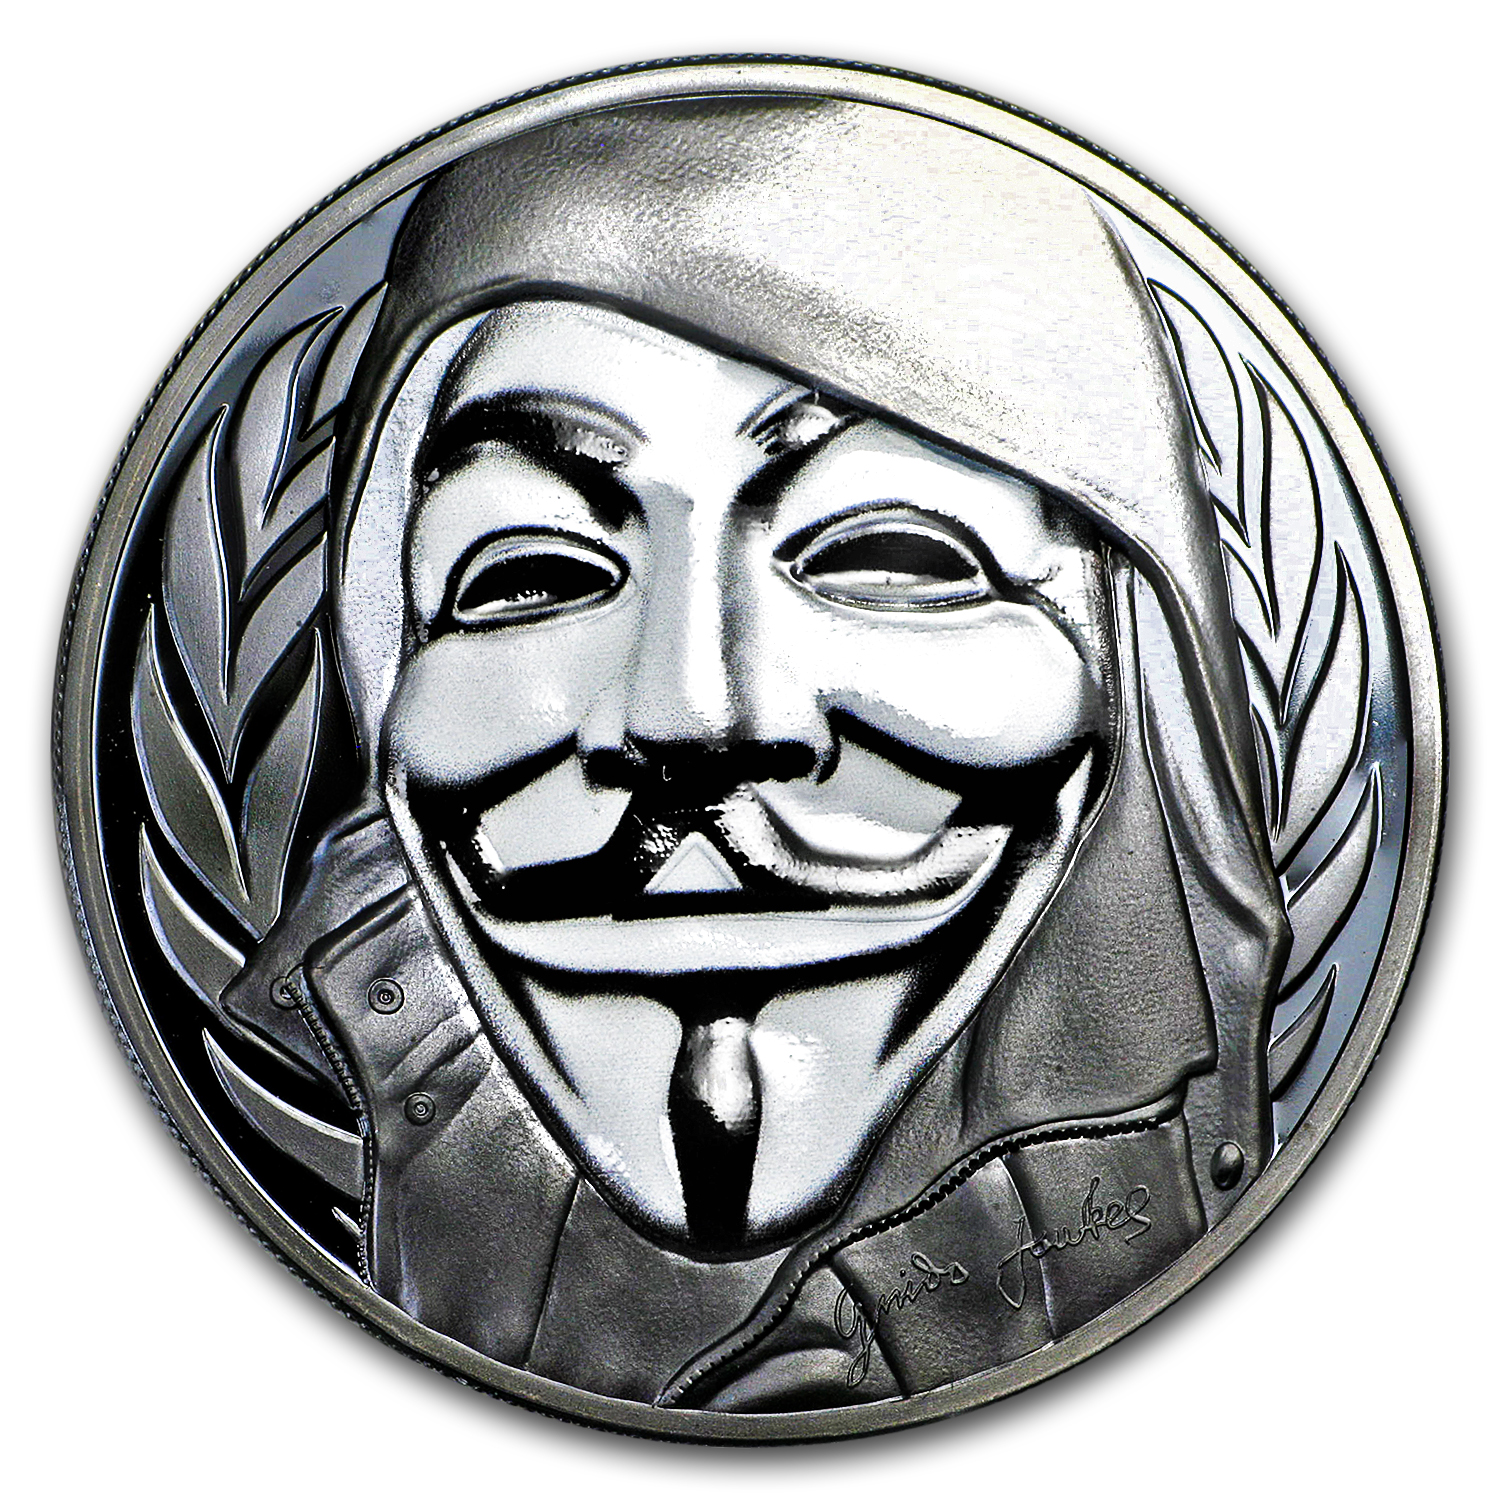 2016 Cook Islands 1 oz Silver $5 Guy Fawkes Mask